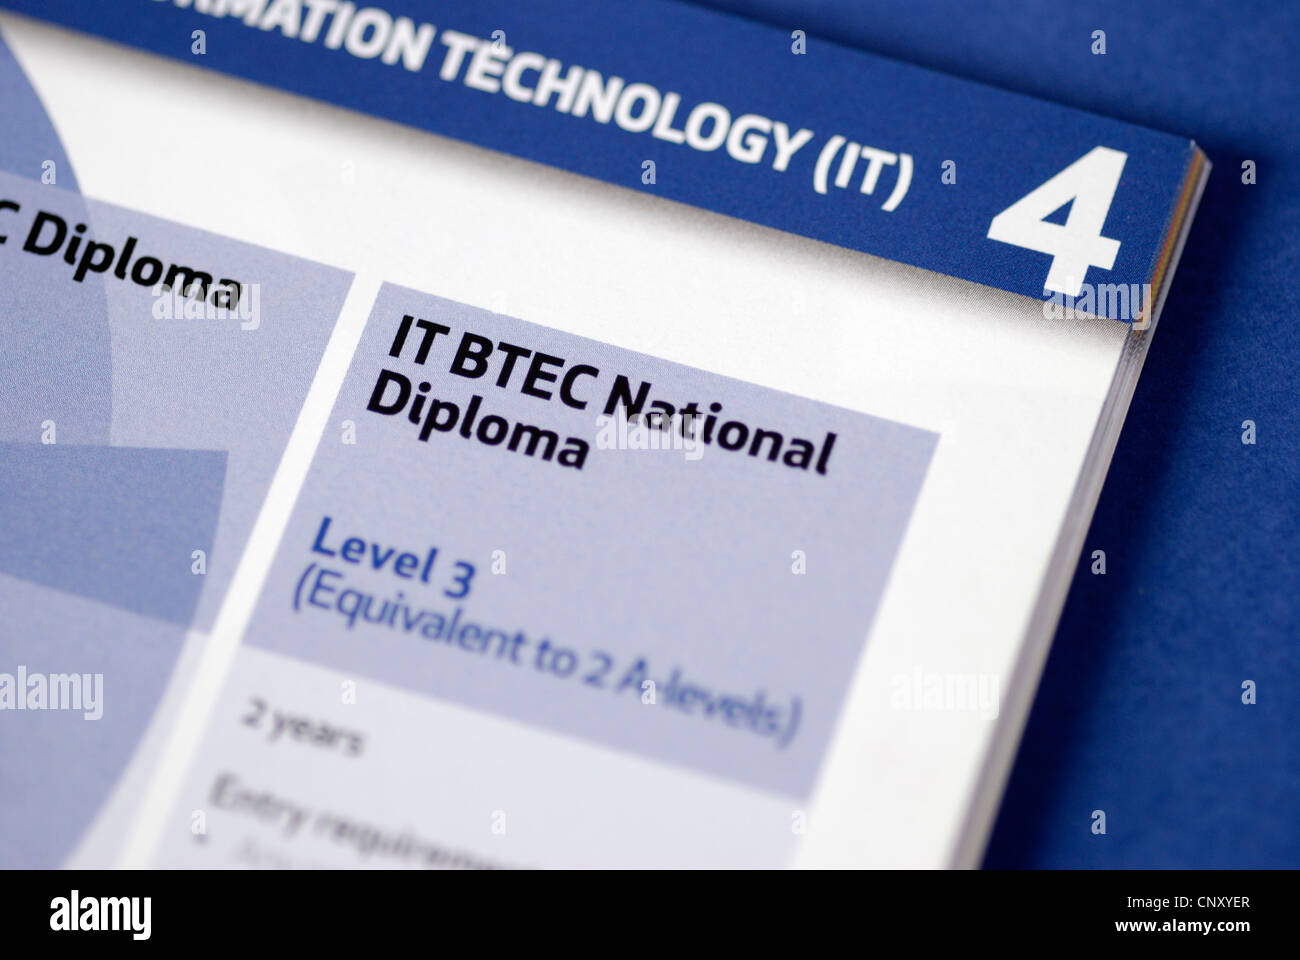 IT BTEC National Diploma   Level 3   listed in a course guide Stock     IT BTEC National Diploma   Level 3   listed in a course guide